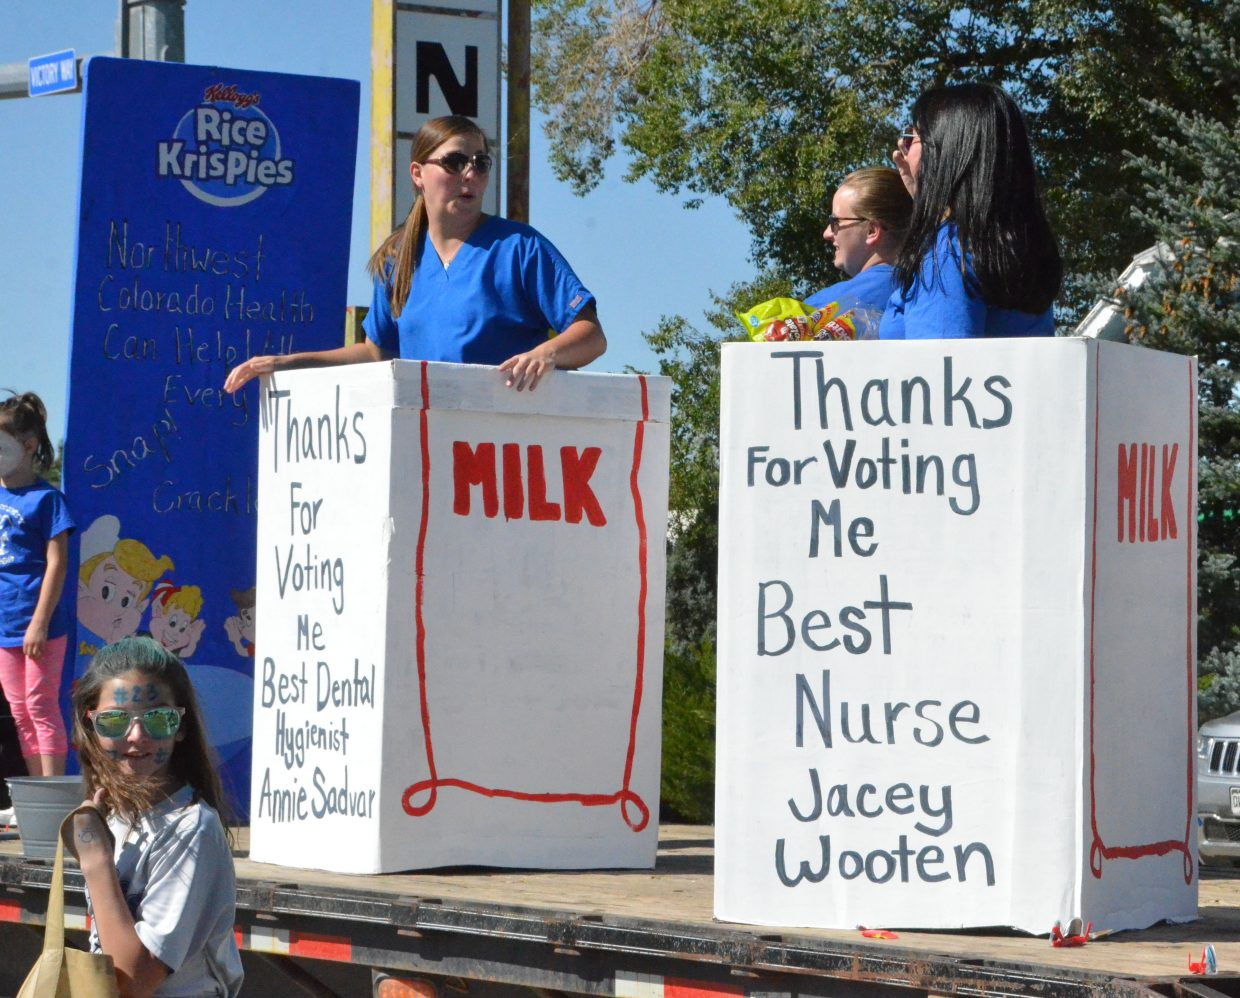 Members of Northwest Colorado Health are confined to milk cartons during Moffat County High School's Friday Homecoming parade.